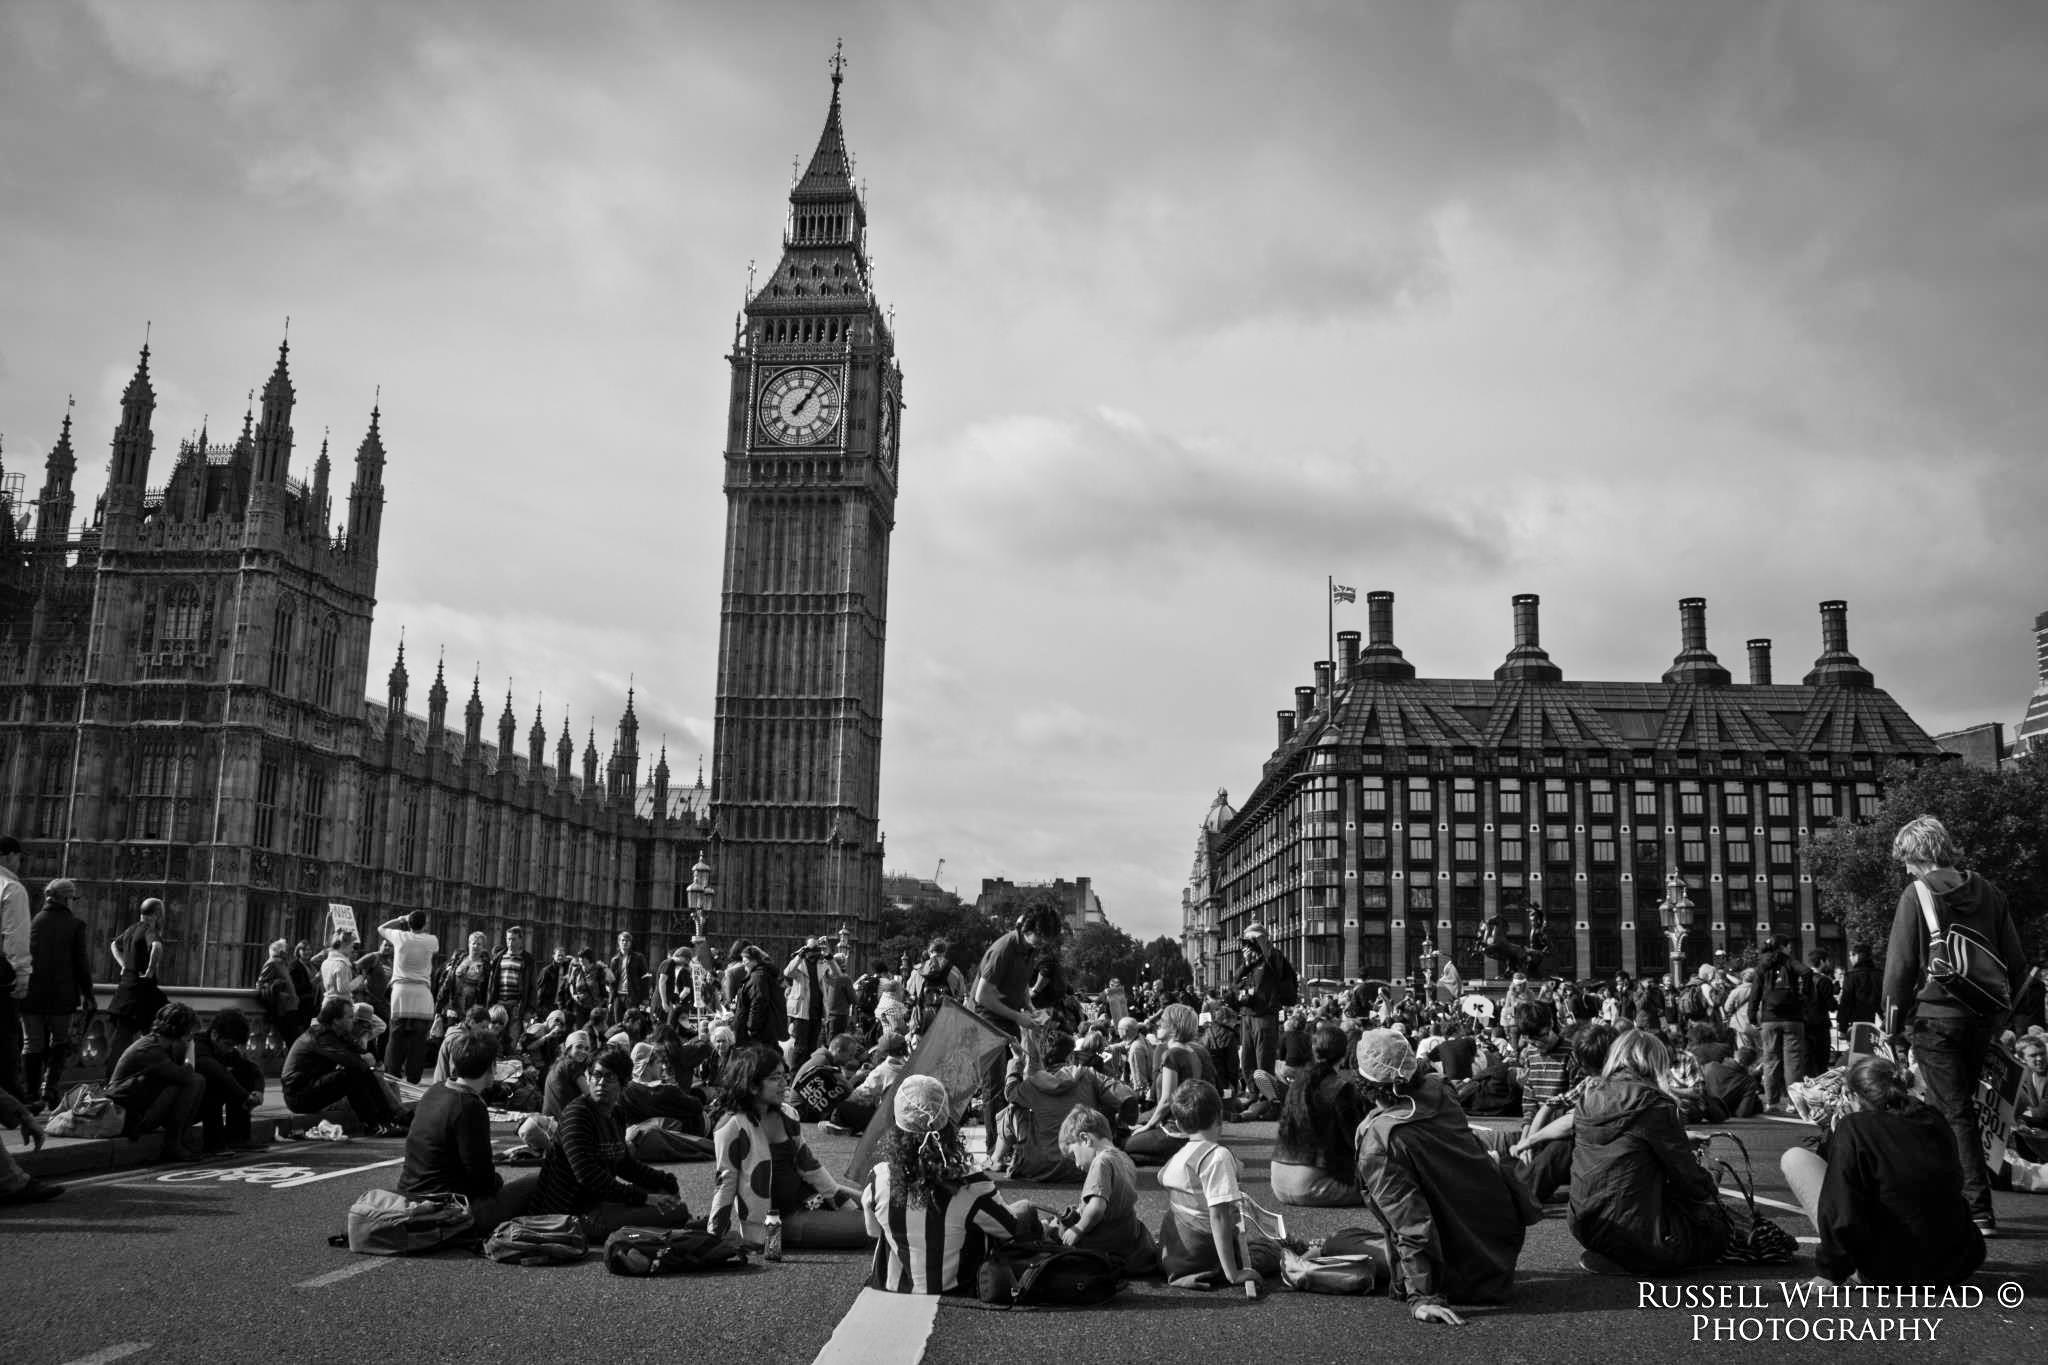 NHS bill protest 2012